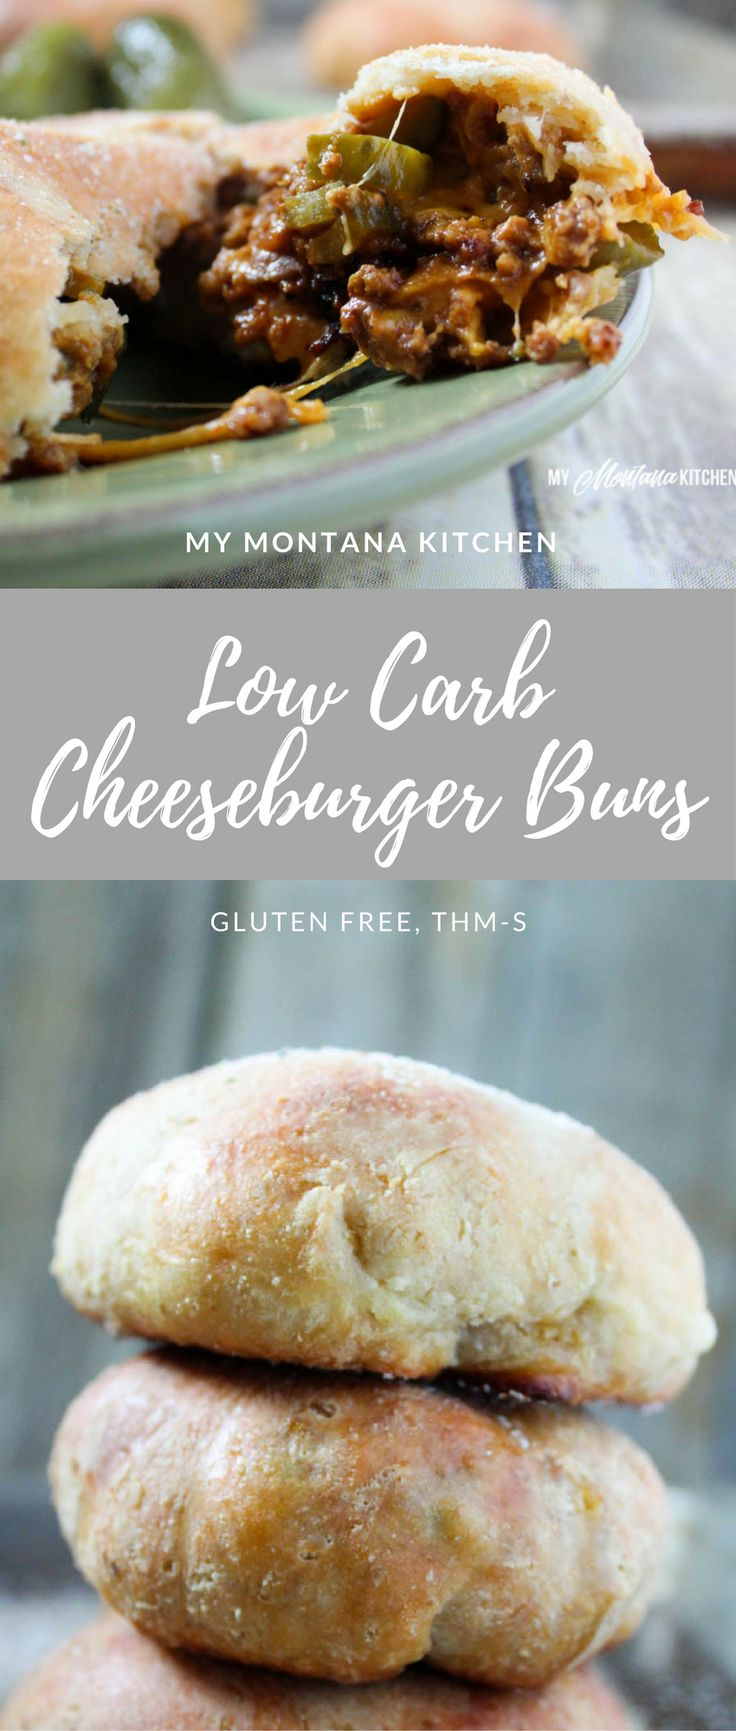 Low Carb Cheeseburger Buns (Gluten Free, THM-S) #trimhealthymama #thm #mymontanakitchen #lowcarb #GlutenFree